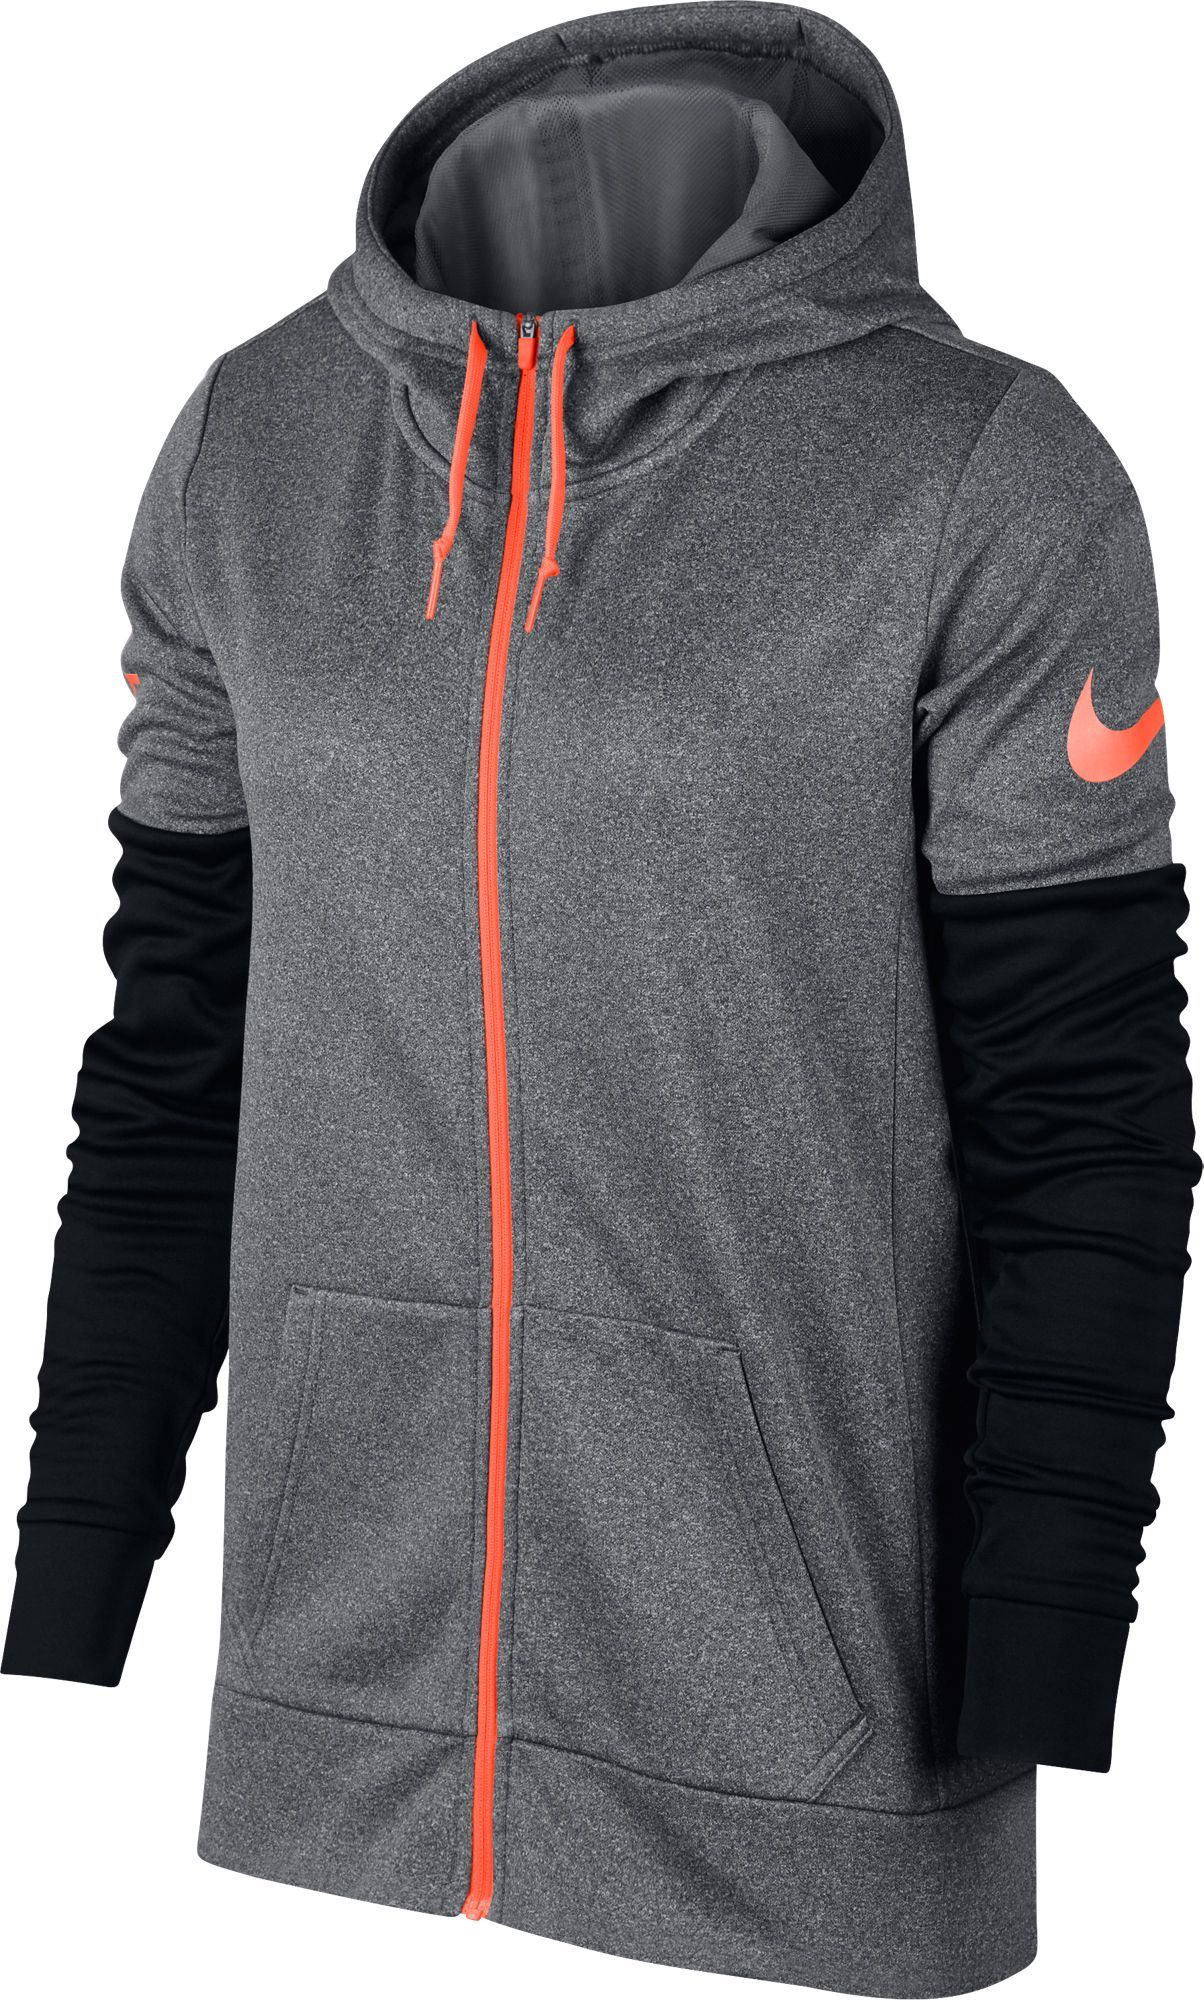 fd9277d3db3b Nike Women s Therma Just Do It Full Zip Training Hoodie (Dark  Gray Heather Black Hyper Crimson